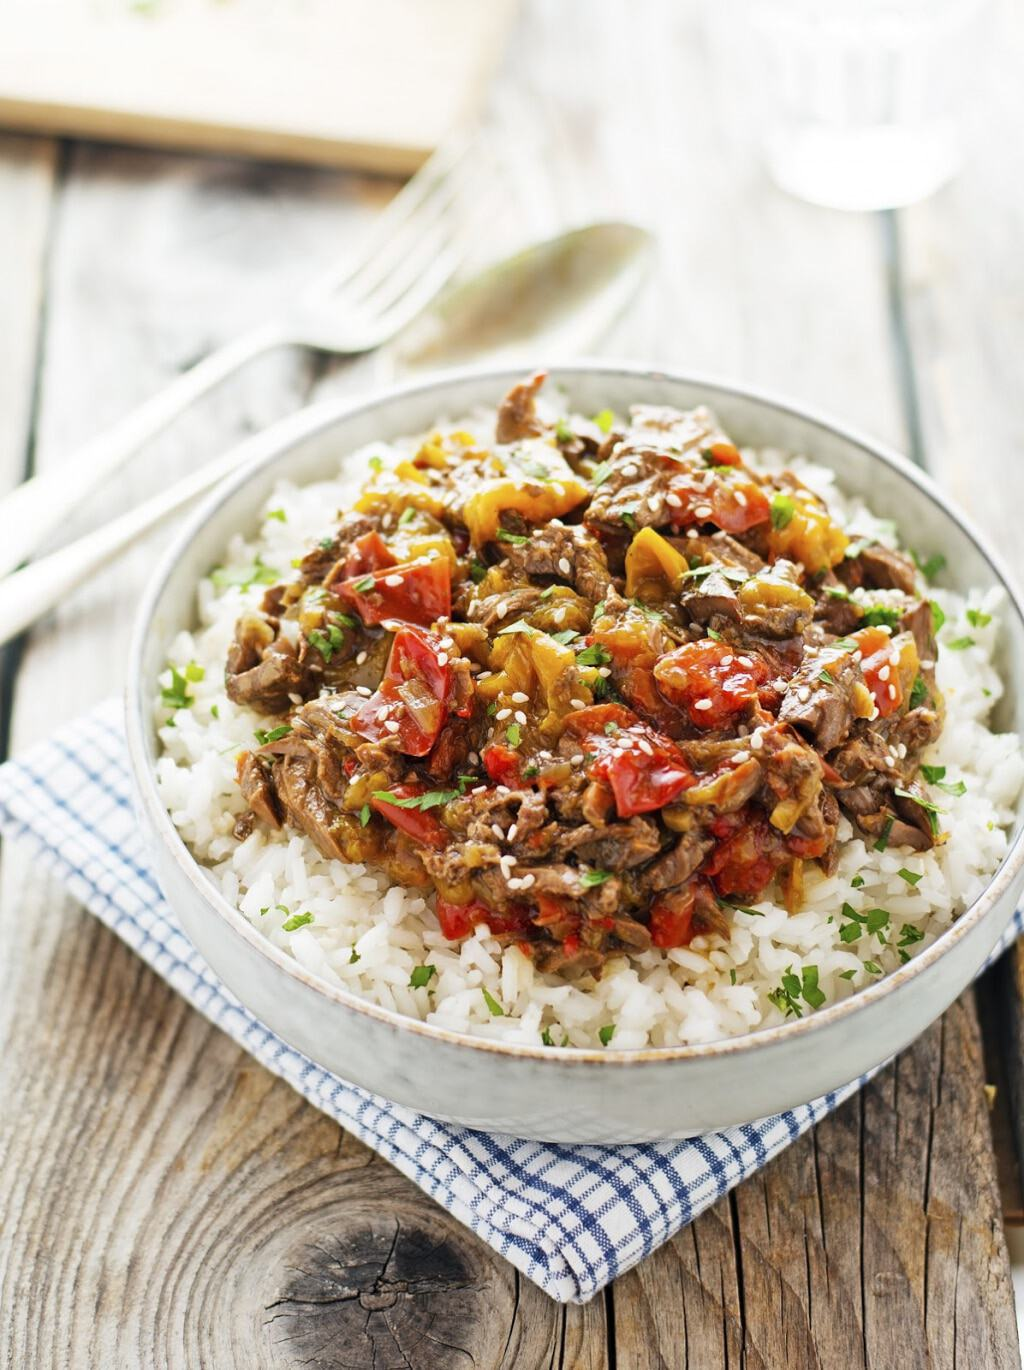 Healthy Paleo Slow Cooker Dinners - Pepper Steak